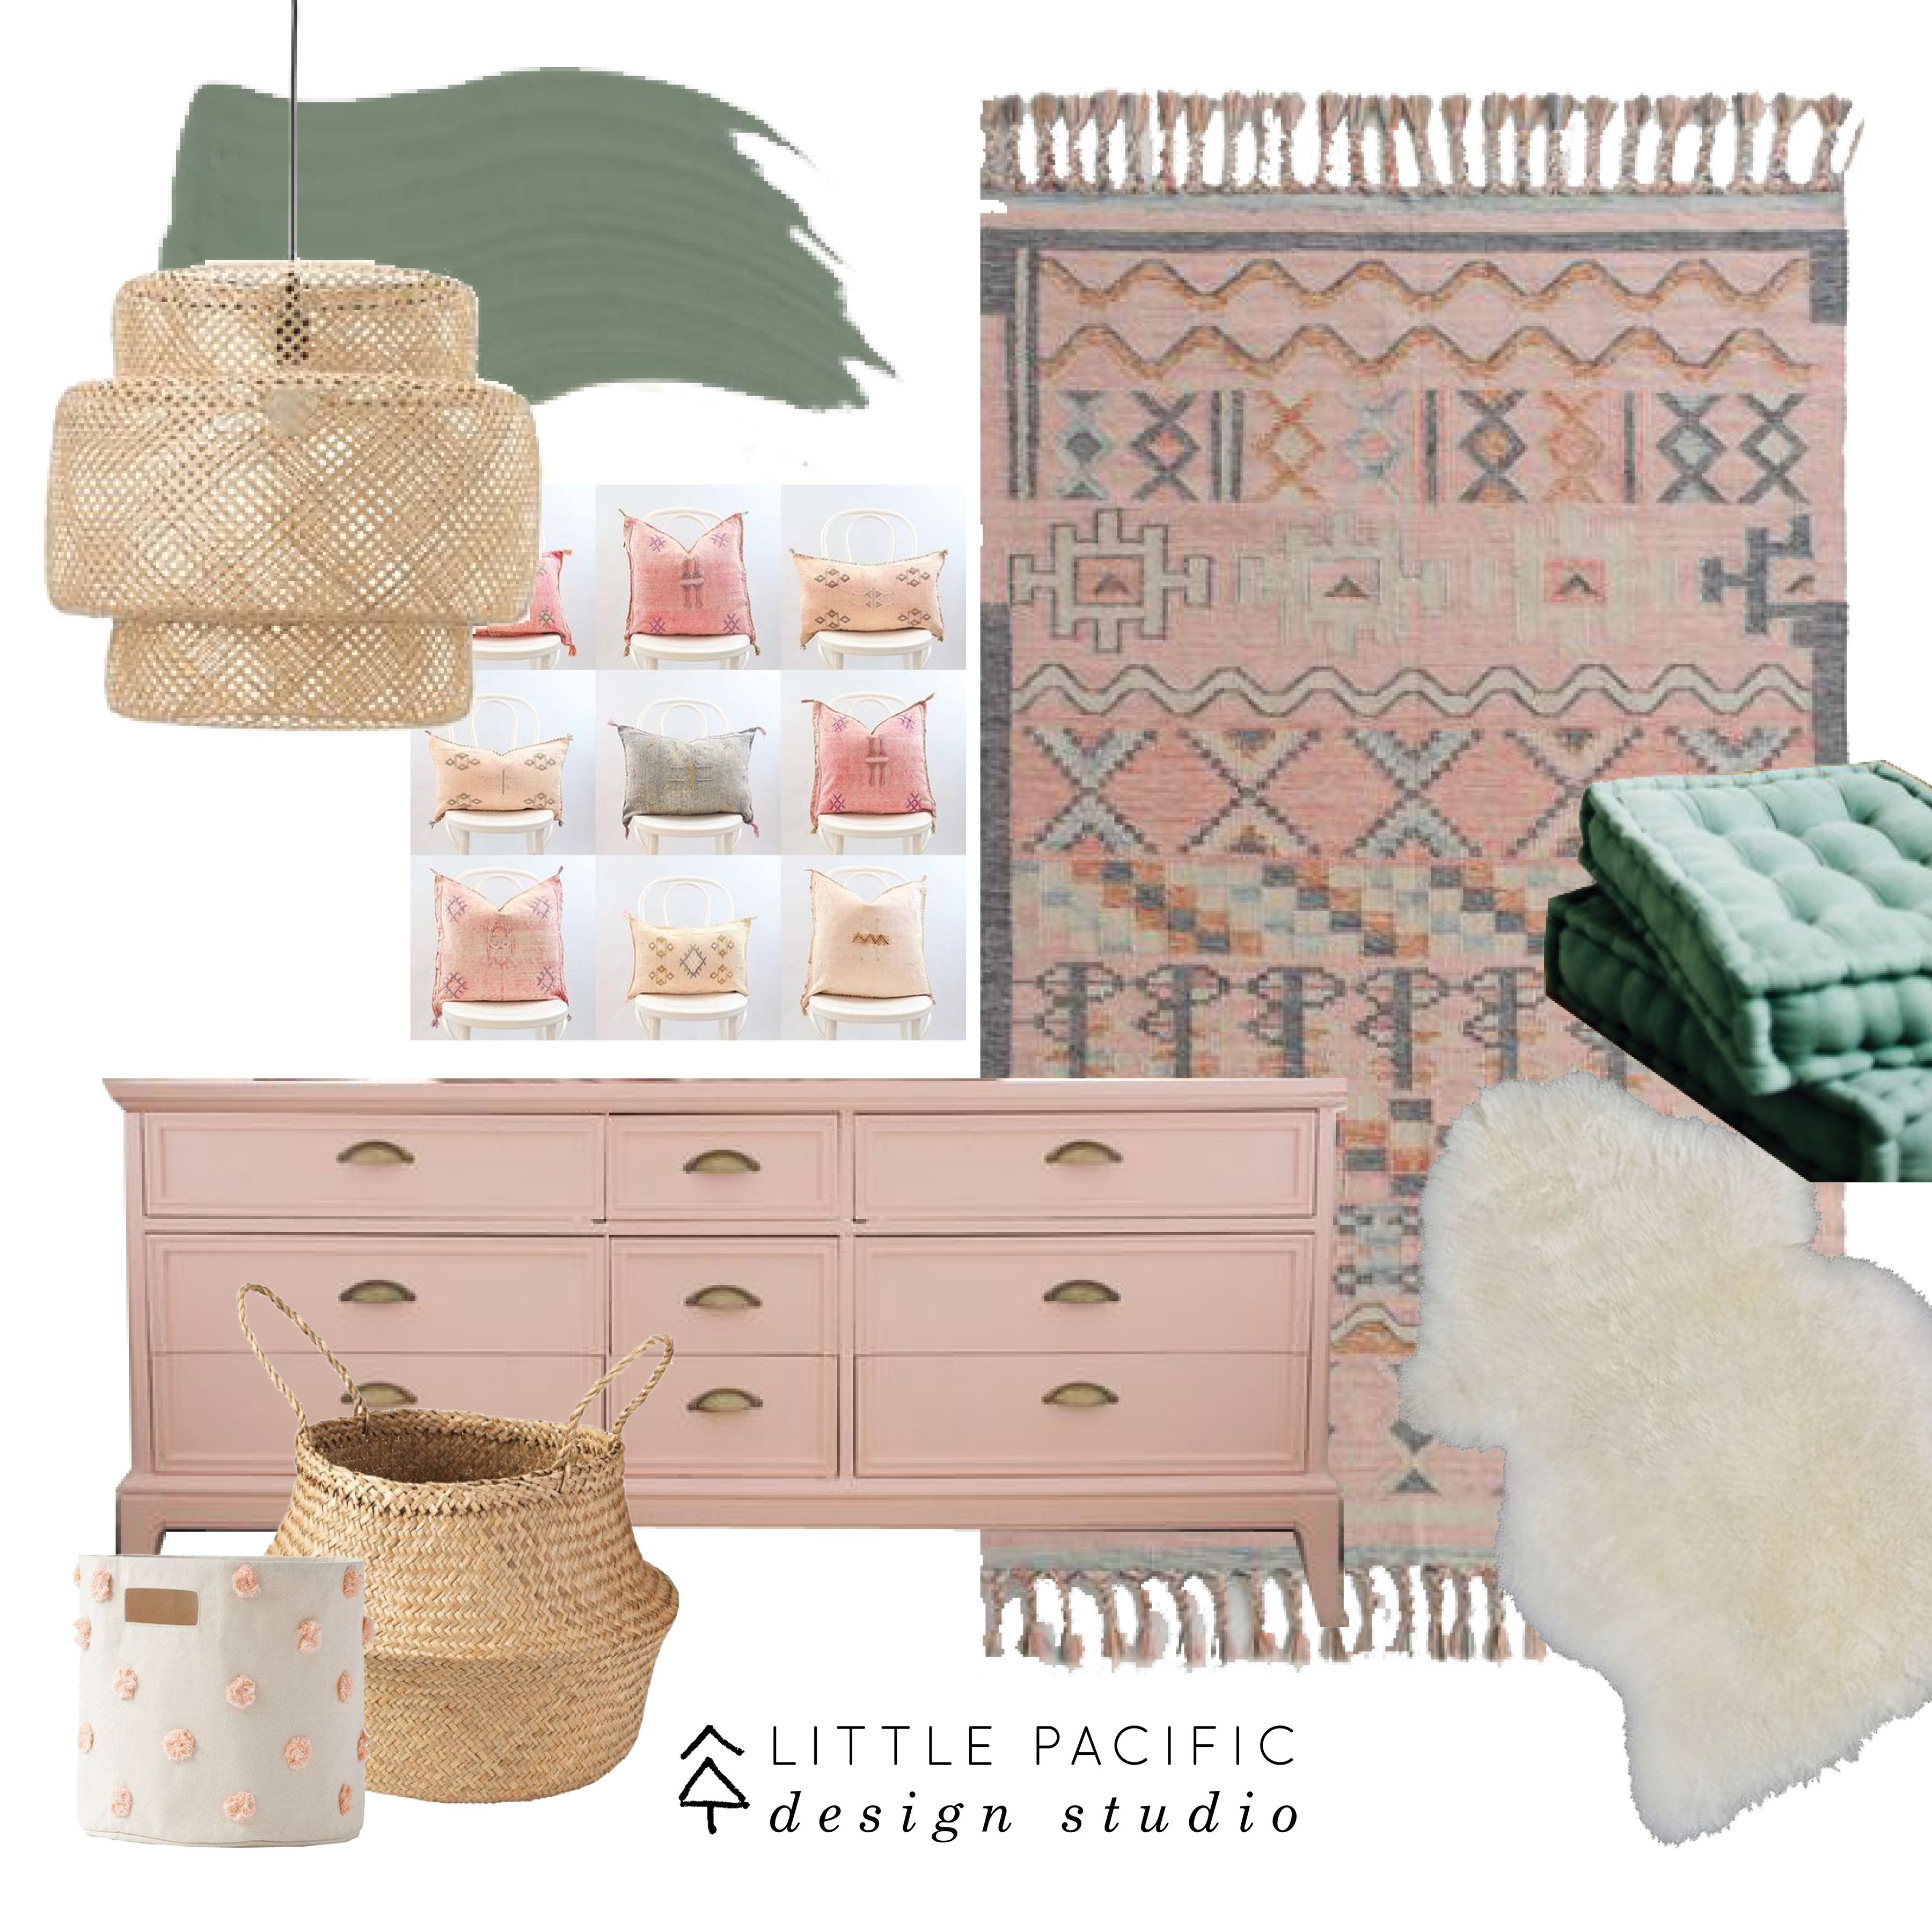 Blush Nursery With Neutral Textures: Modern Bohemian Nursery Mood Board With A Color Palette Of